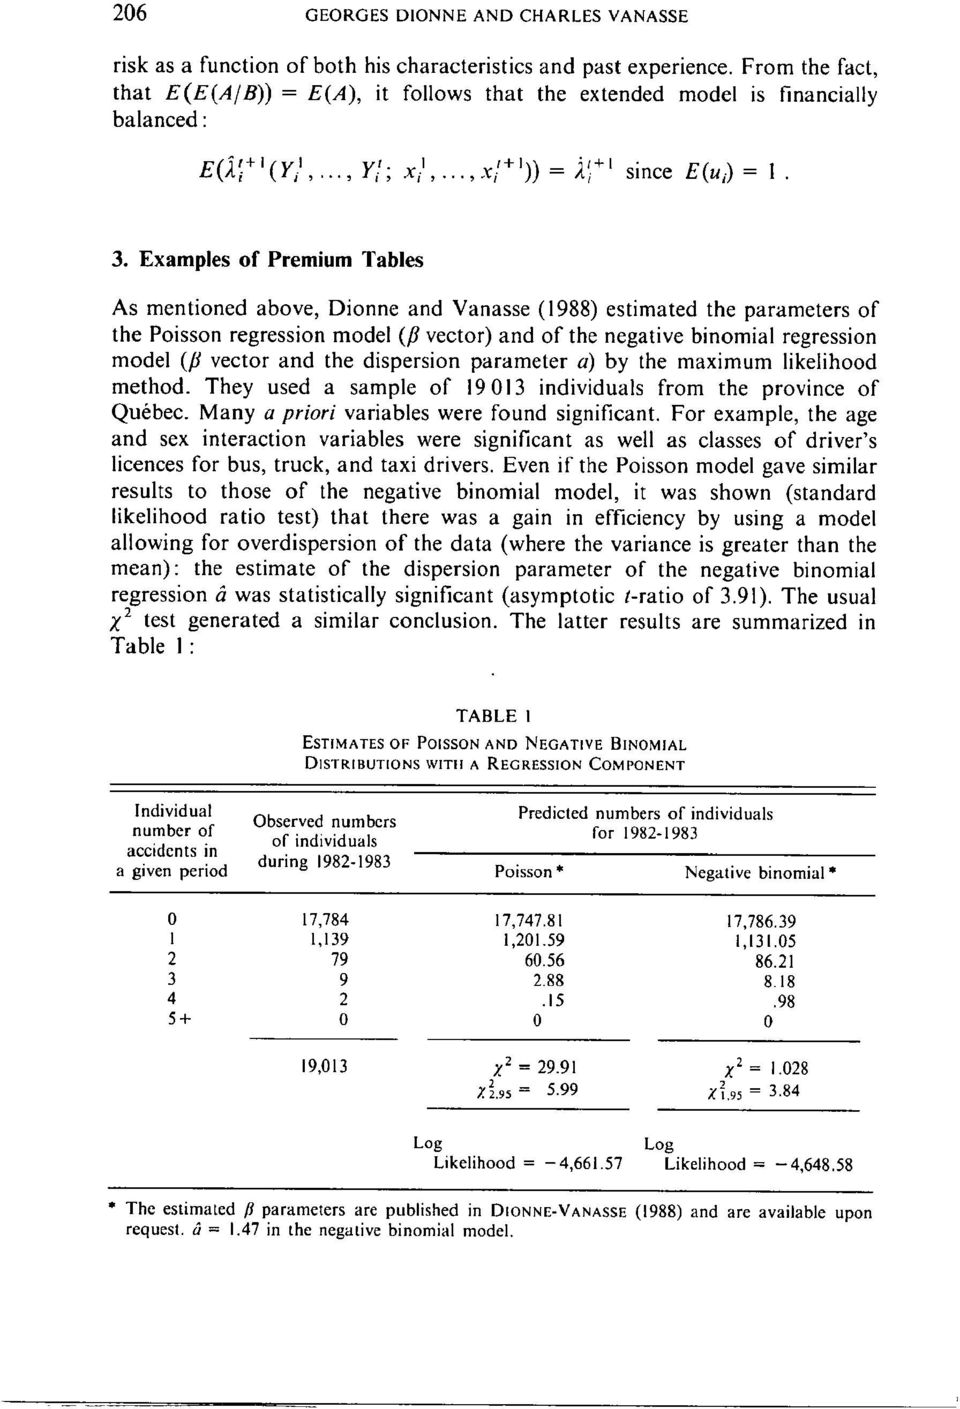 Examples of Premium Tables As mentioned above, Dionne and Vanasse (1988) estimated the parameters of the Poisson regression model (fl vector) and of the negative binomial regression model (fl vector